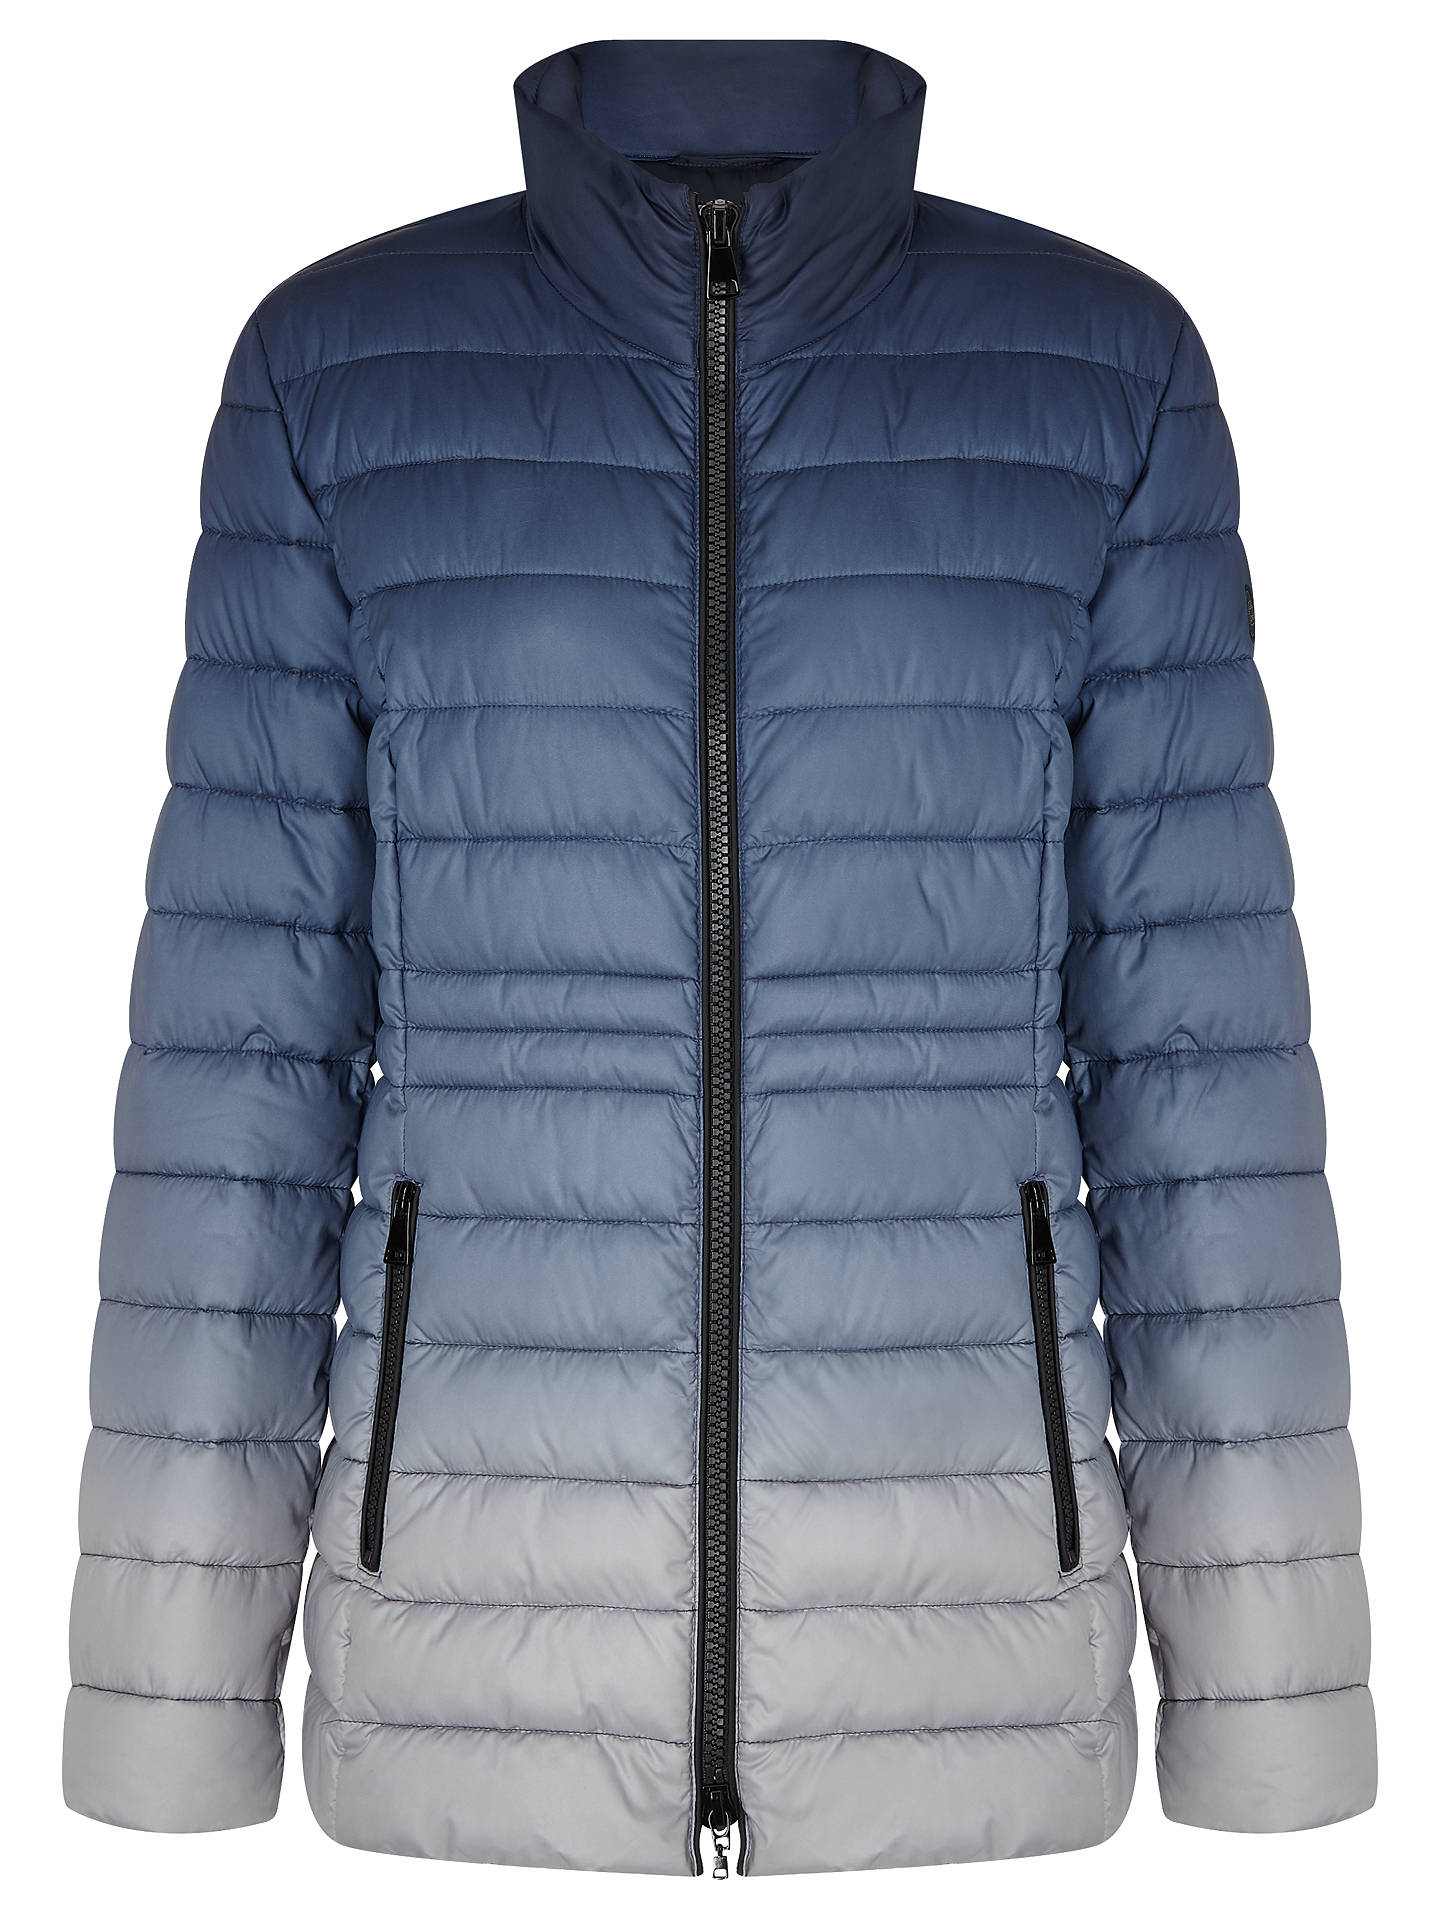 4a14b65afc89 Gerry Weber Ombre Quilted Jacket at John Lewis   Partners